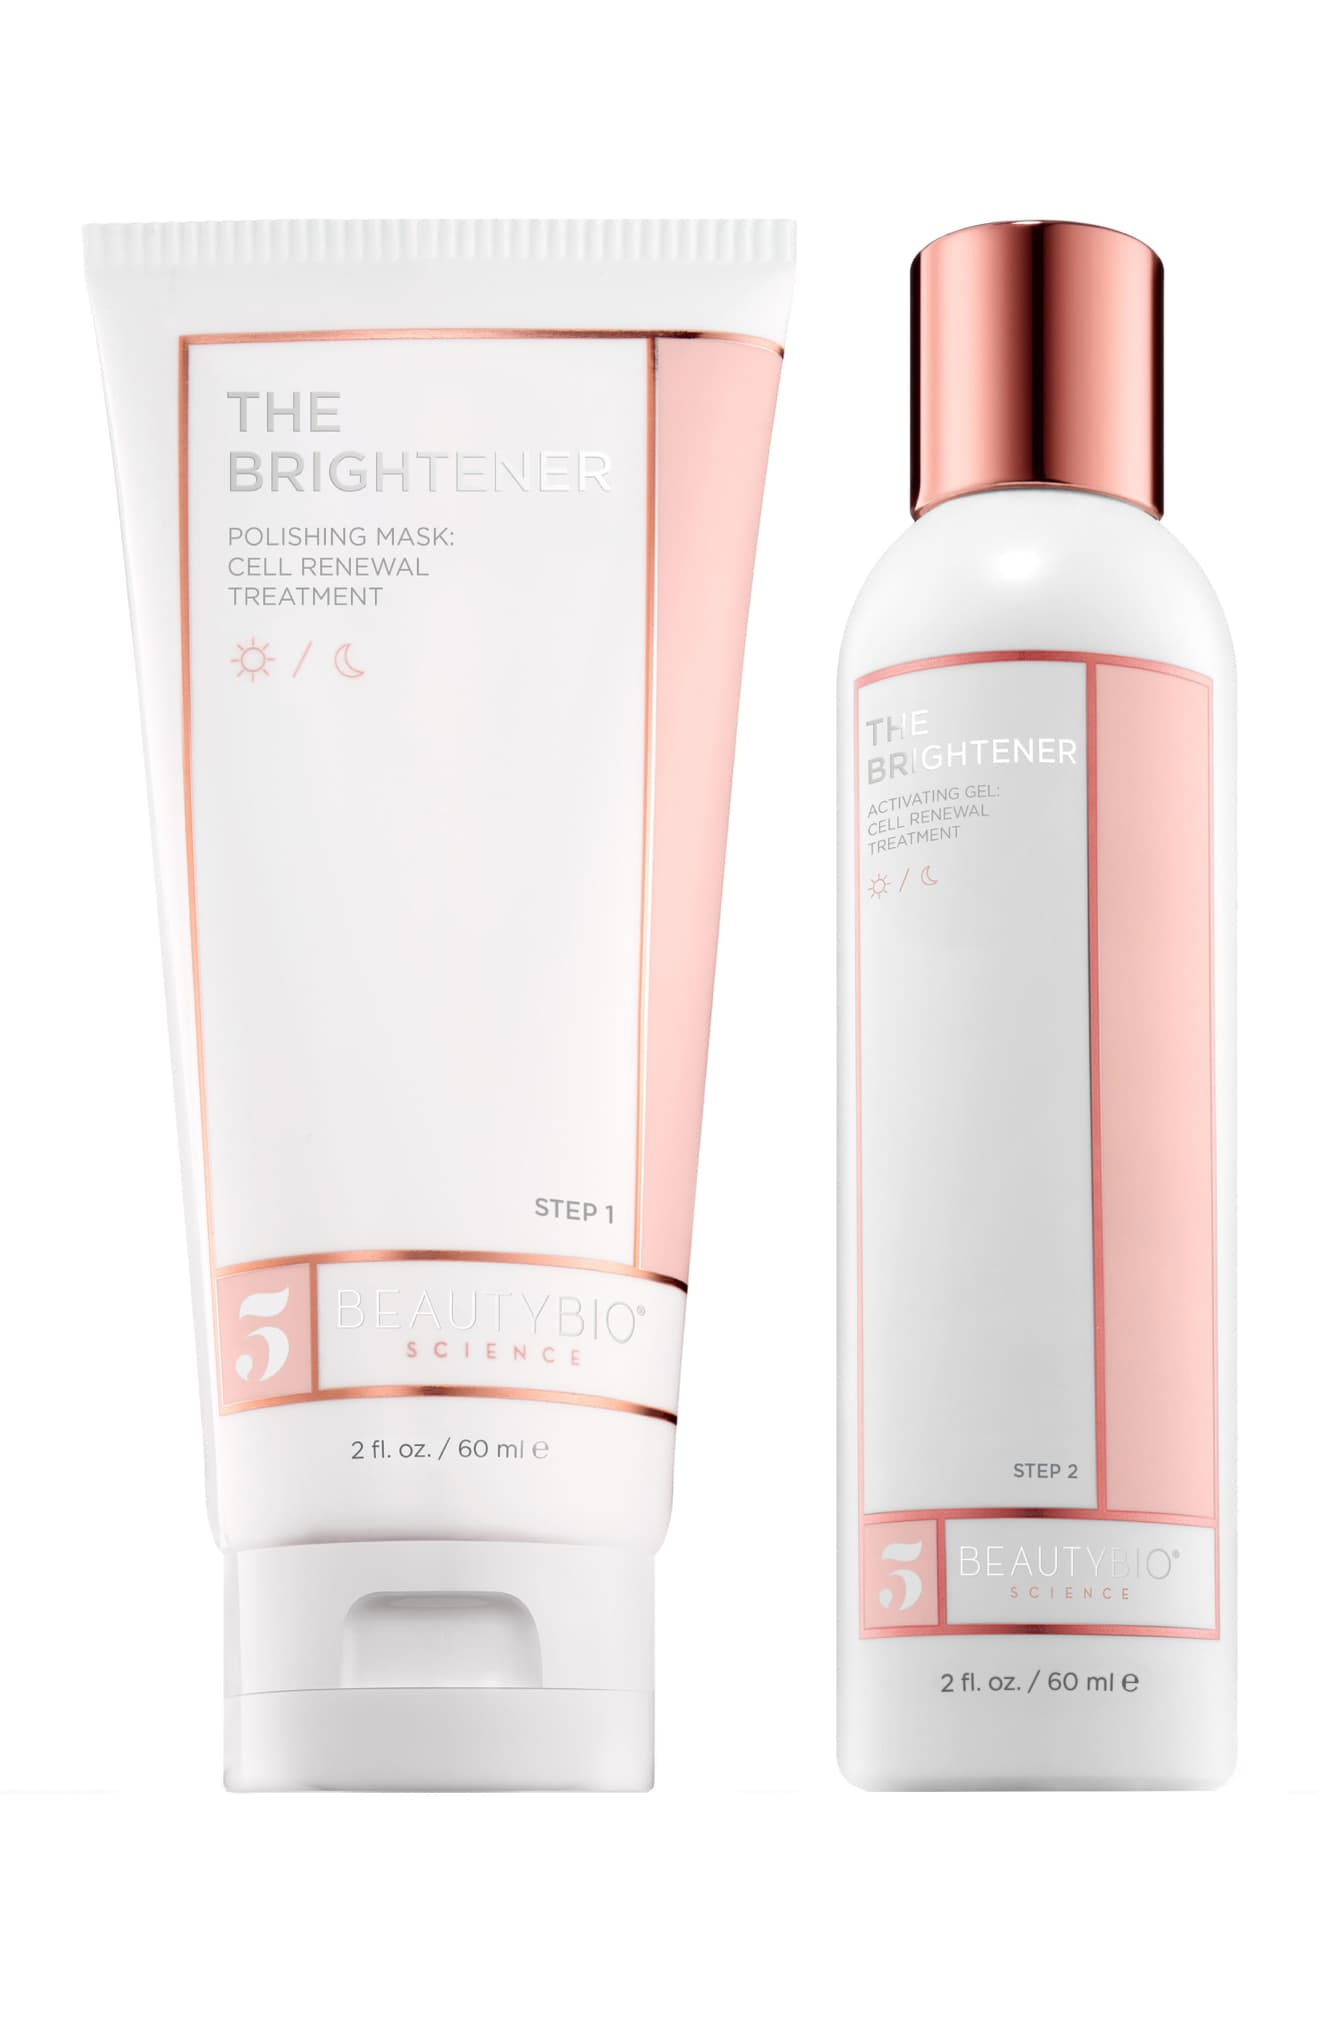 BEAUTYBIO The Brightener Two-Part Cell Renewal Treatment